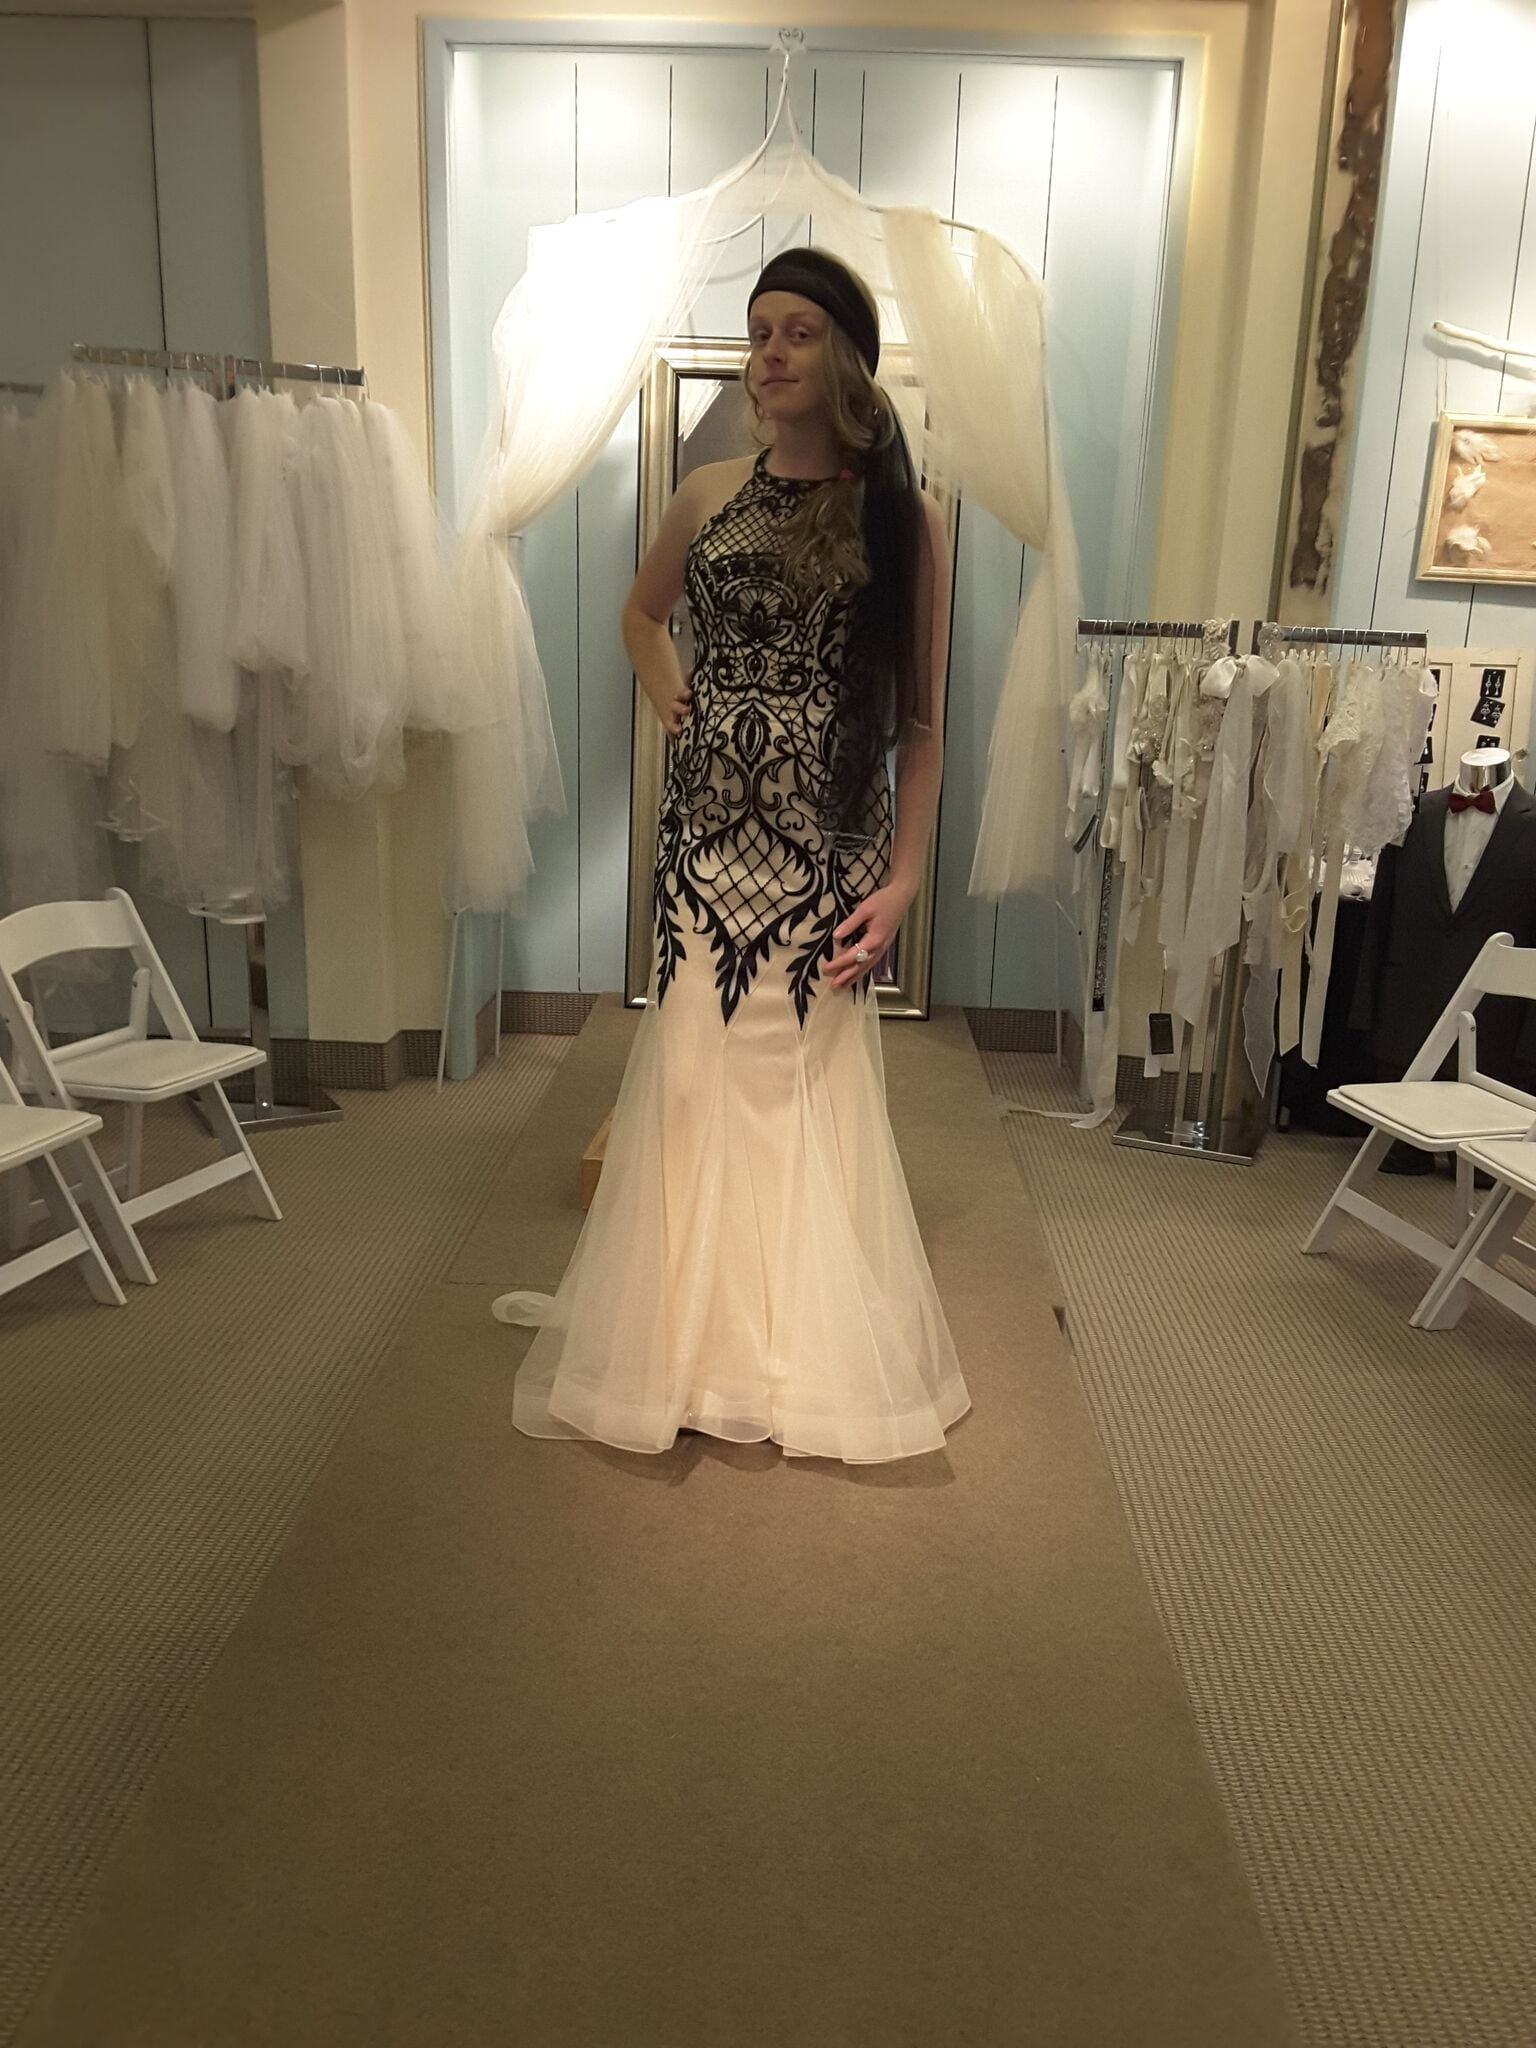 The Gilded Gown - Knoxville TN - Store Pic 3 | The Gilded Gown